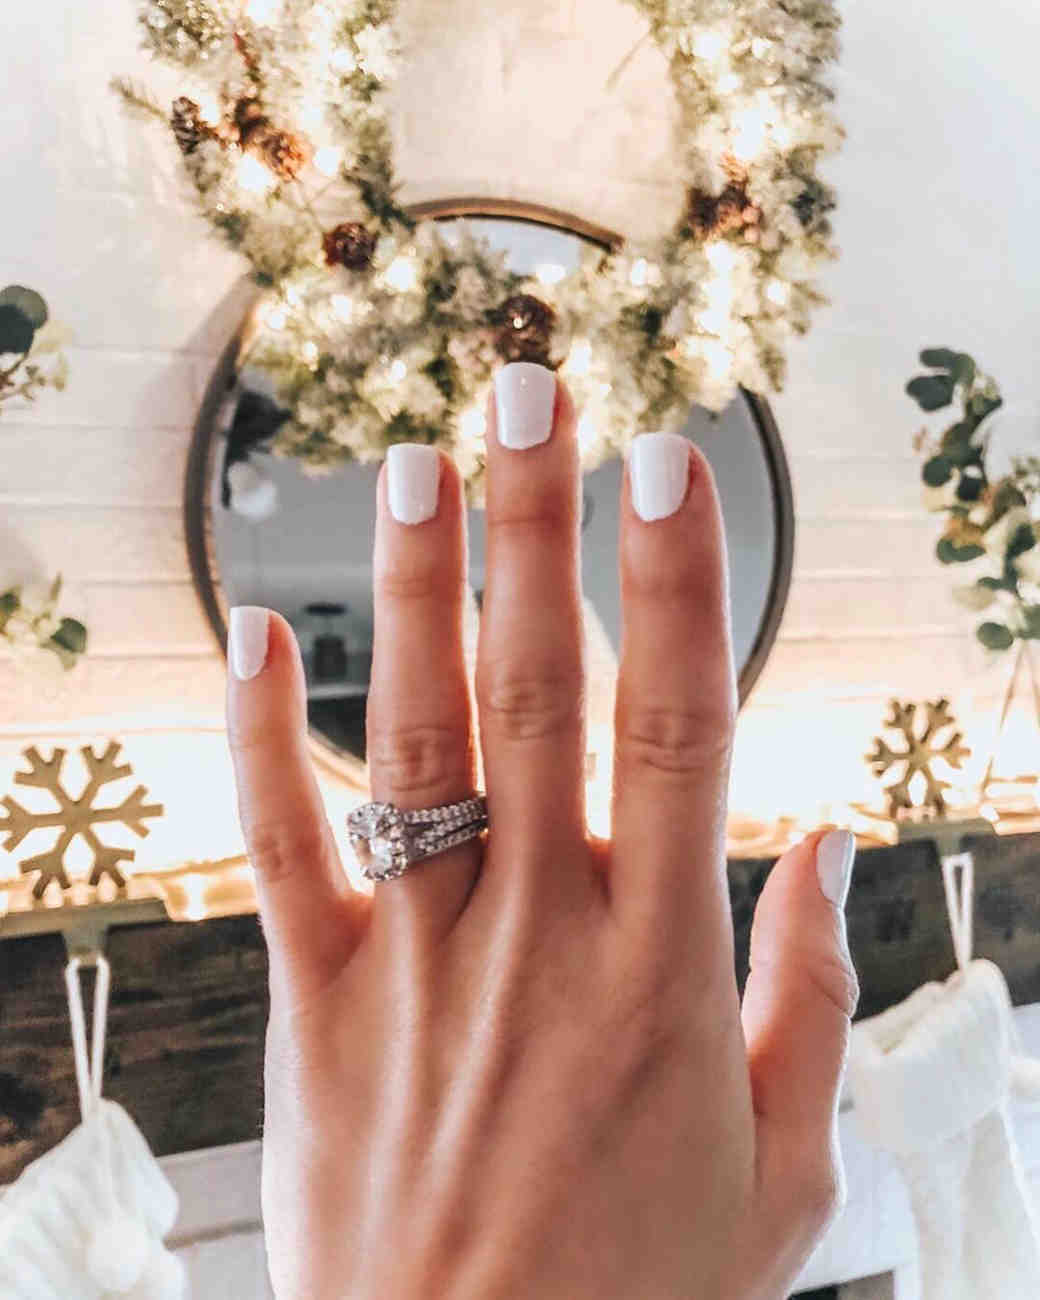 engagement ring selfie mantel with christmas decor